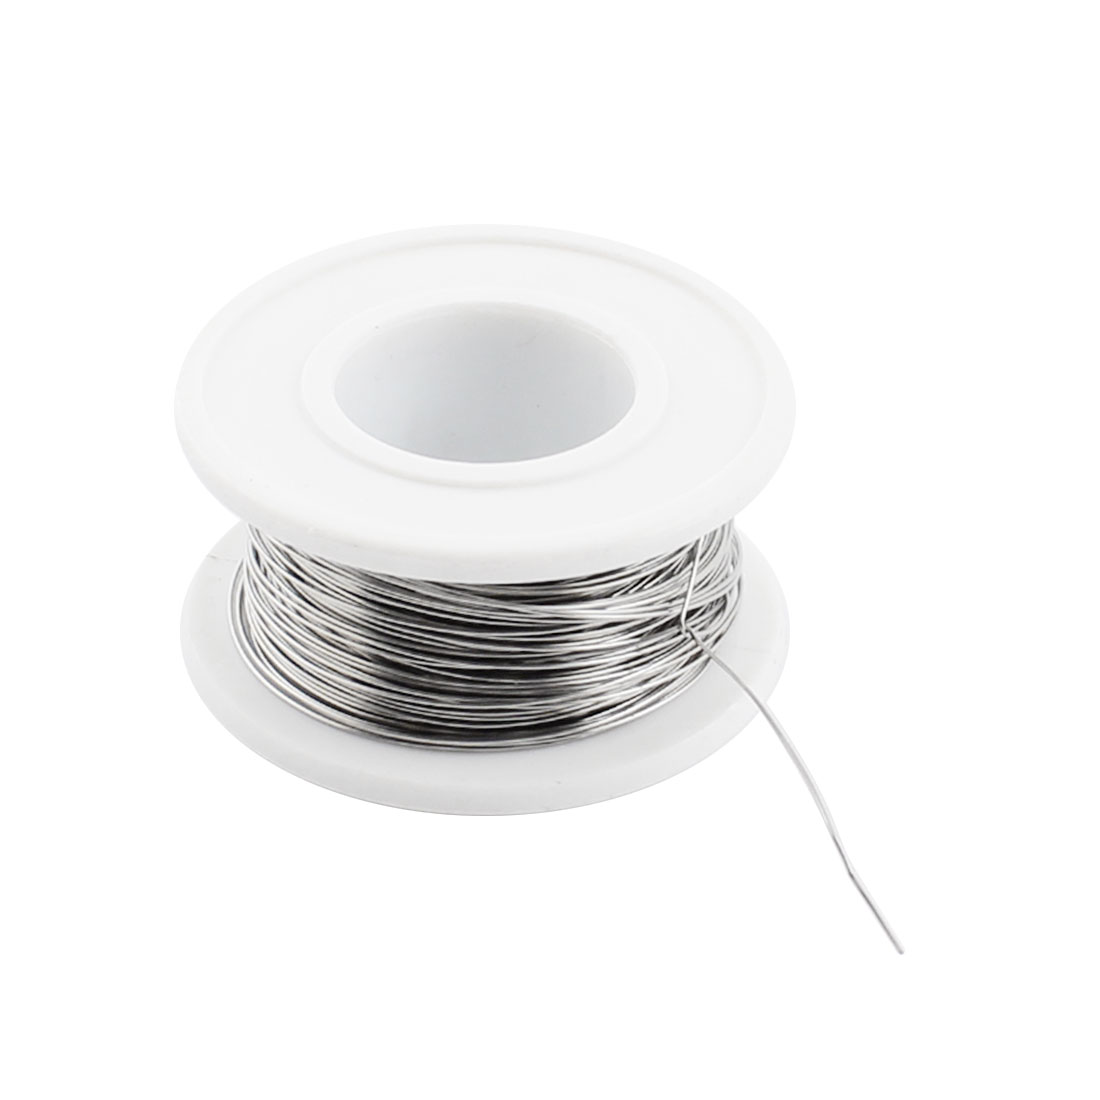 50Meter 165ft Long 0.35mm AWG27 Gauge Nickel Copper Alloy Resistance Heating Coils Resistor Wire